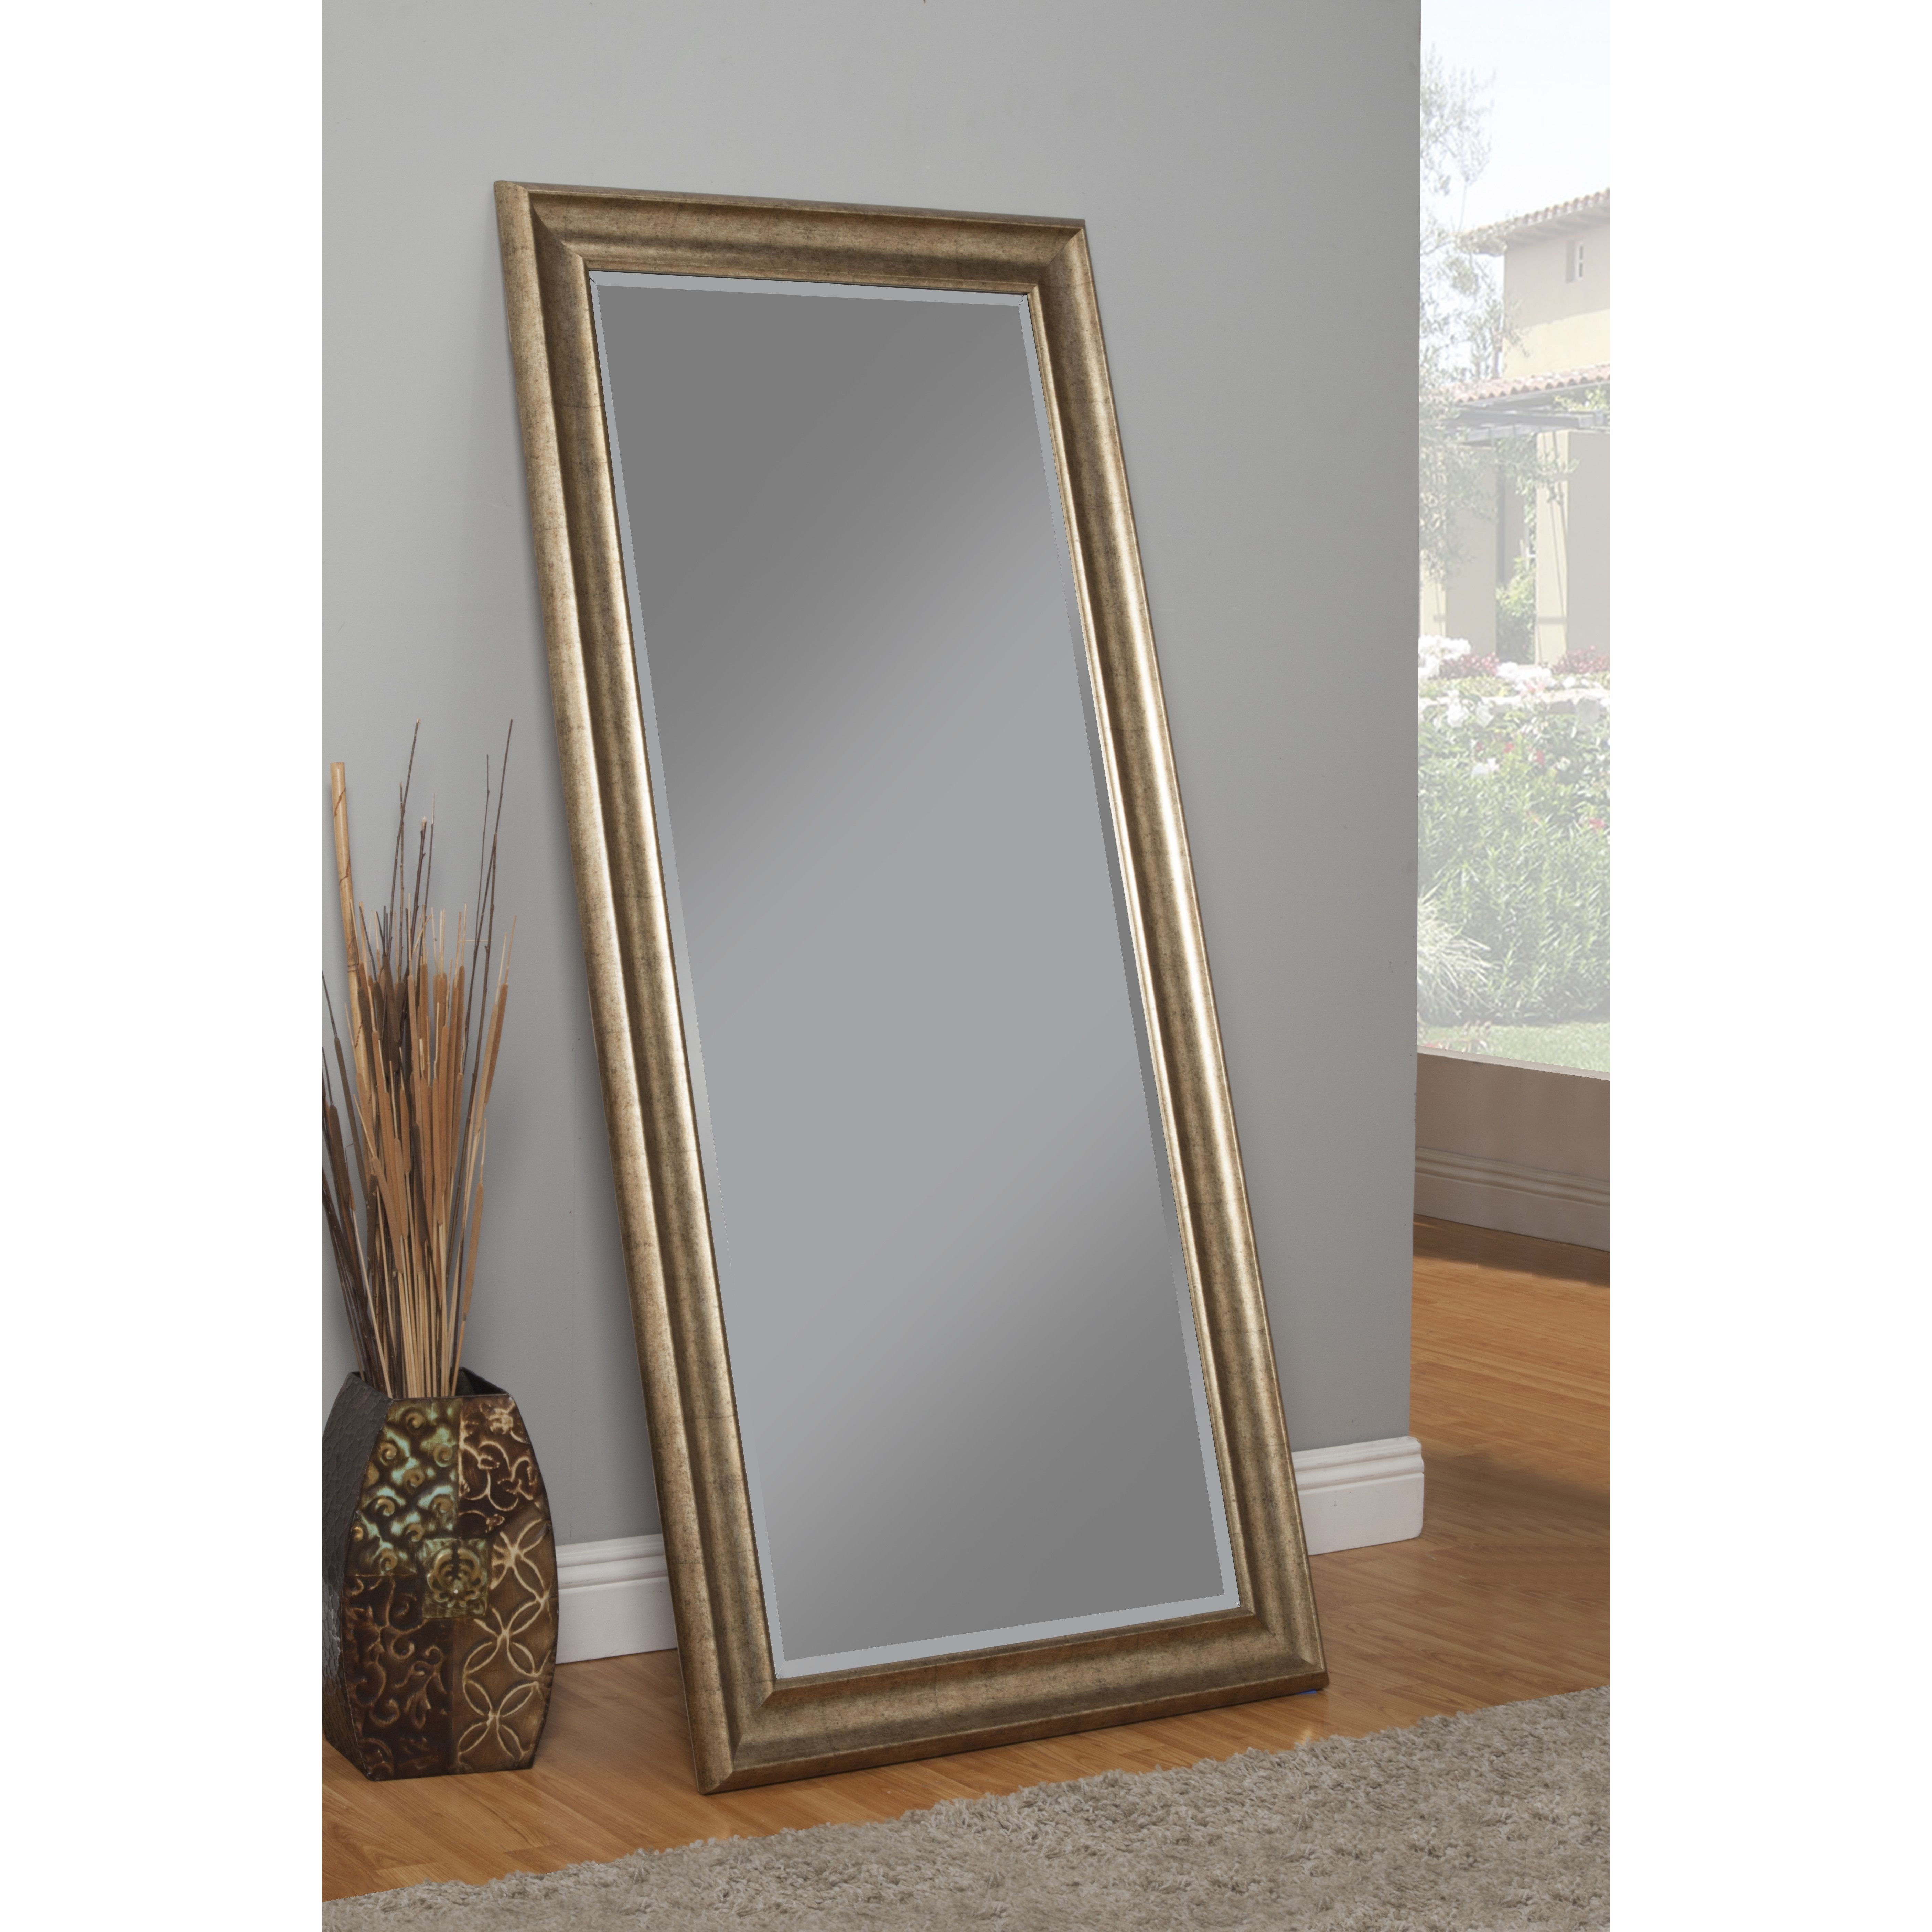 ikea beautiful extra ideas interior of cheap design white leaning trend mirrors best top gold arrangement diy standing wall luxury frame for bedroom length decor mirror full designs floor oversized small pillows size walmart large